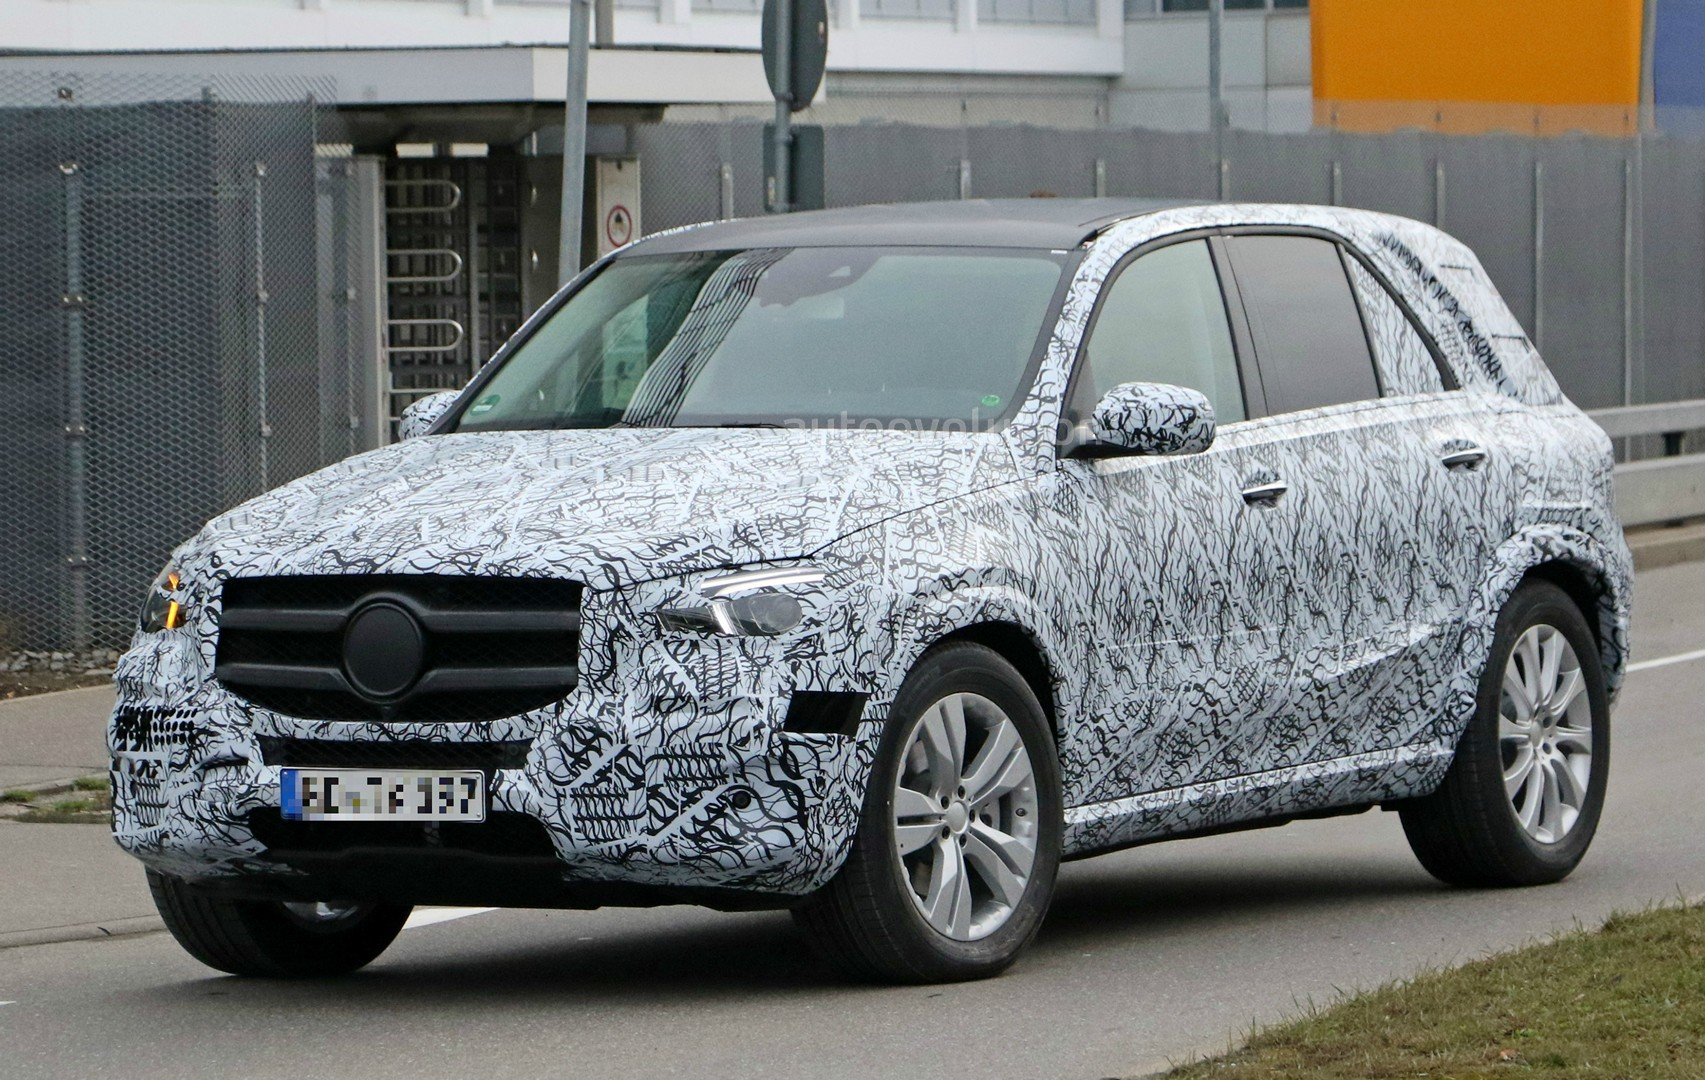 2019 mercedes benz gle spied muddy prototype shows g